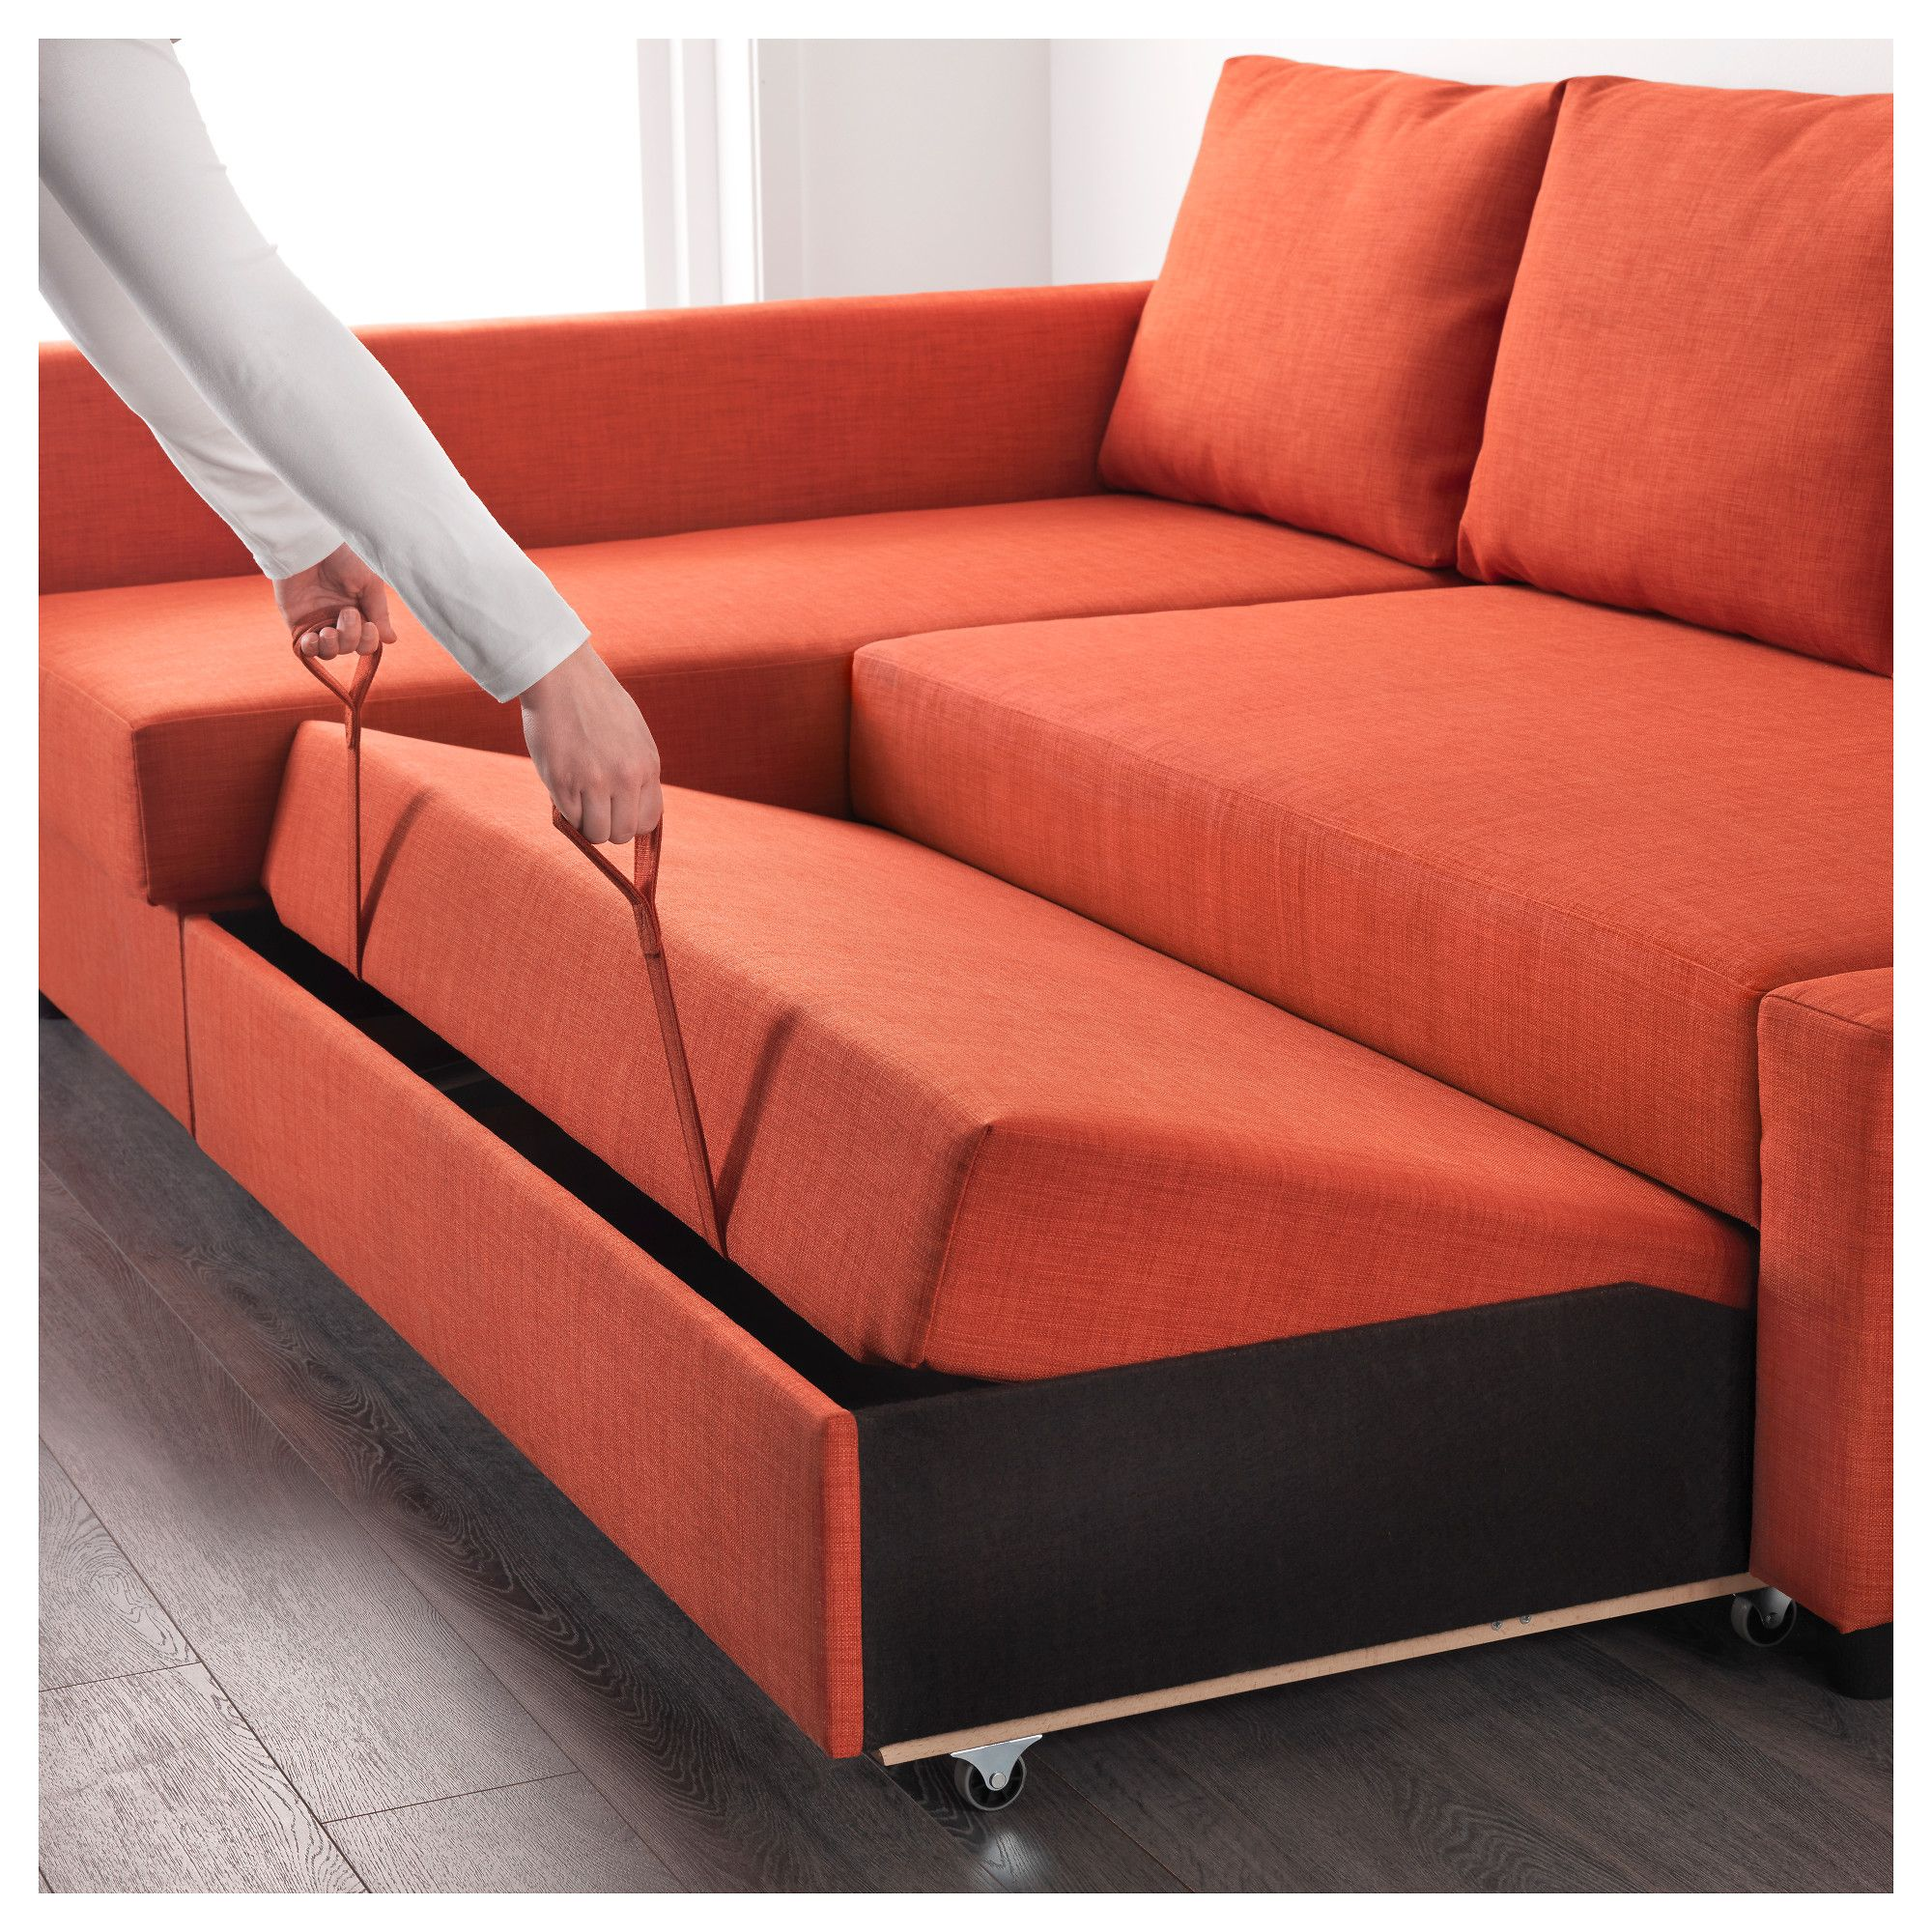 Ikea Couch Bett Trend Ikea Friheten Corner Sofa Bed With Storage Skiftebo Dark Orange